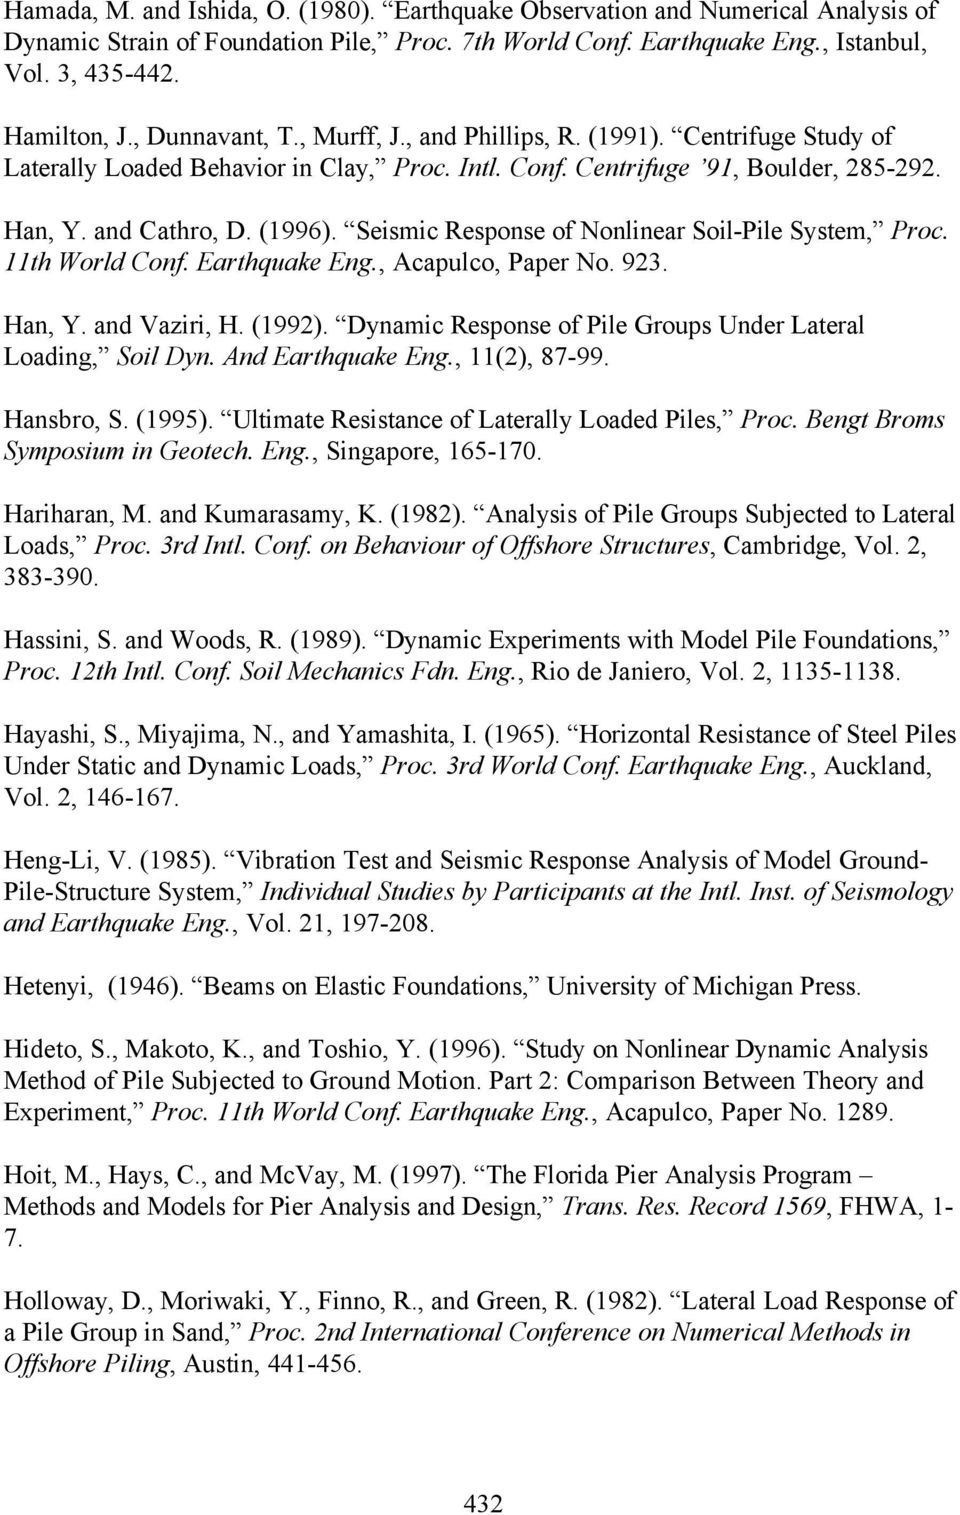 Seismic Response of Nonlinear Soil-Pile System, Proc. 11th World Conf. Earthquake Eng., Acapulco, Paper No. 923. Han, Y. and Vaziri, H. (1992).